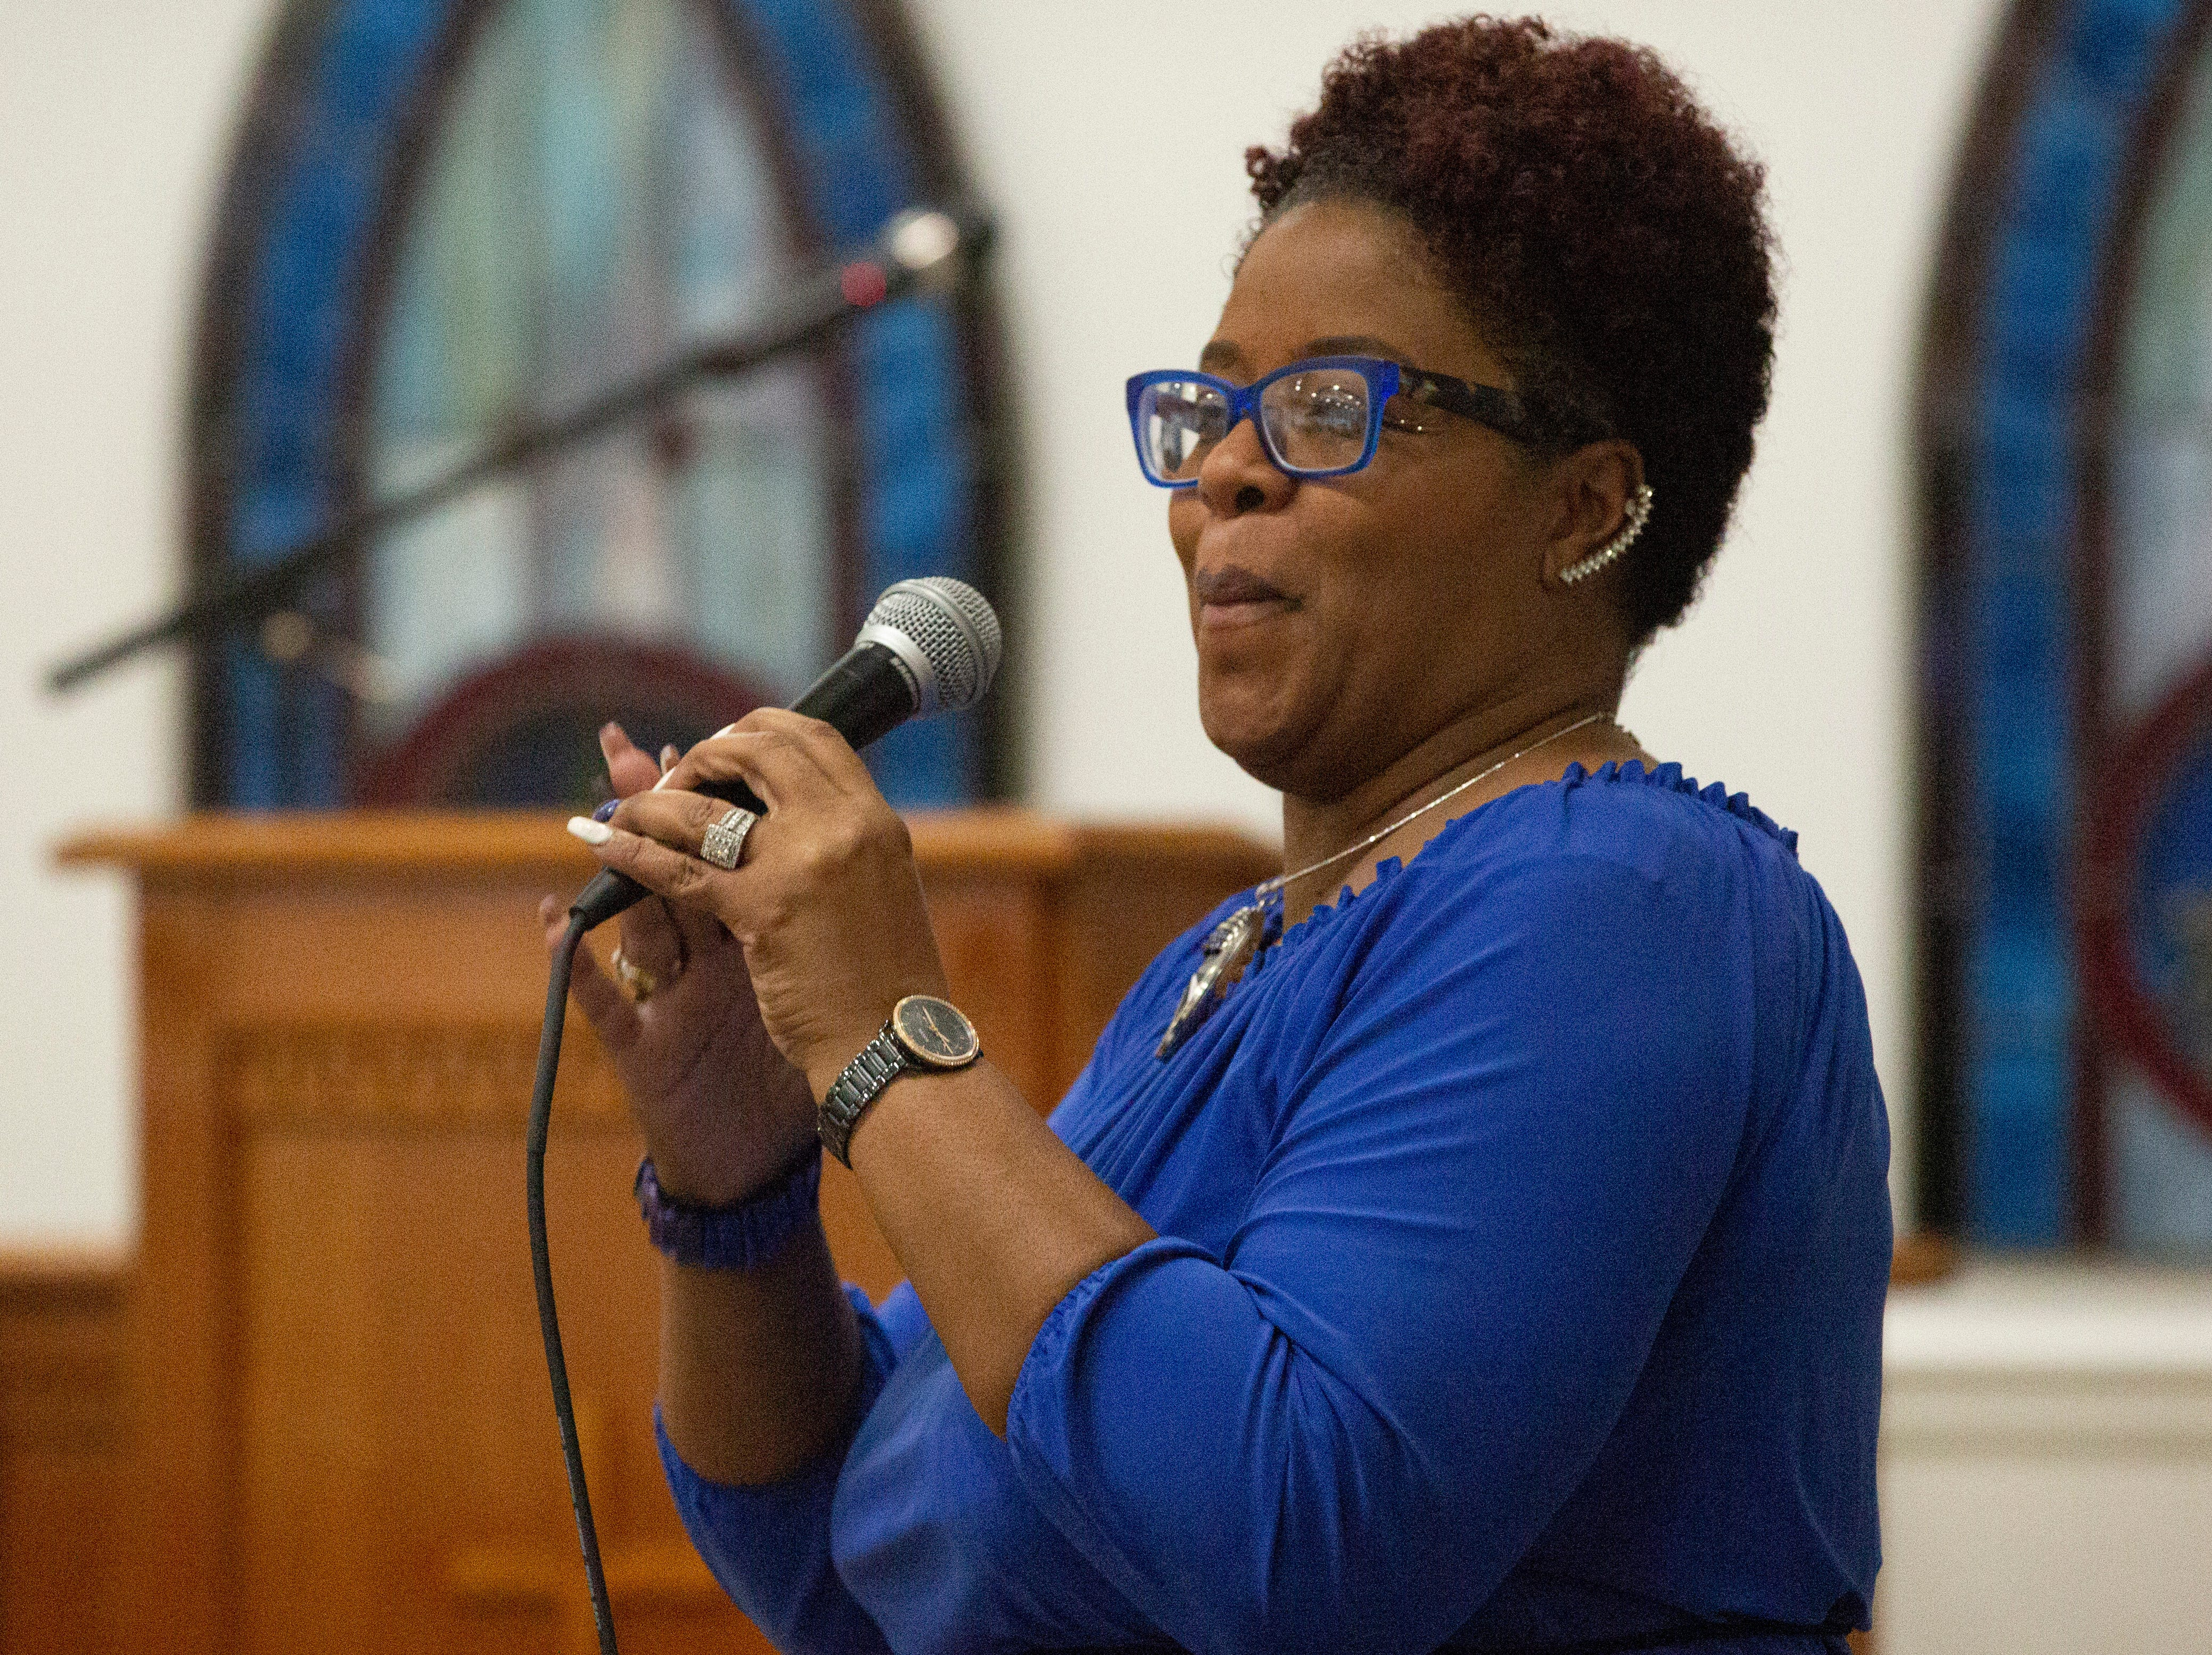 Rev. Lynntesha Henley leads attendees in song during the unity breakfast.